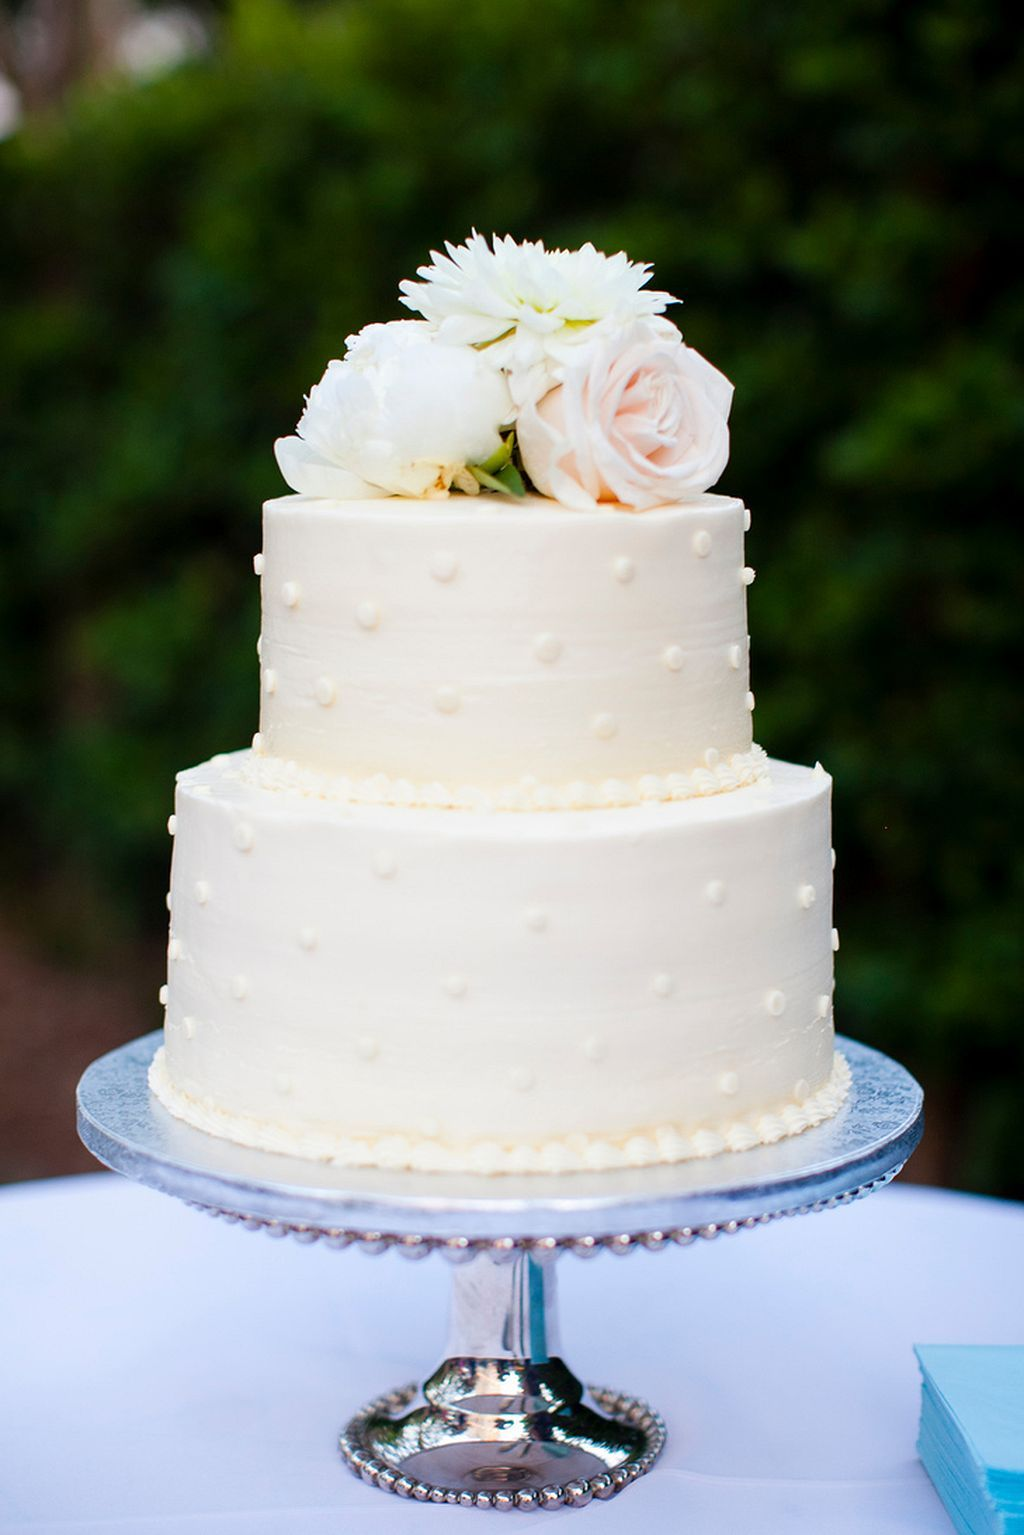 60+ Simple and Elegant Wedding Cake Ideas | Elegant wedding cakes ...